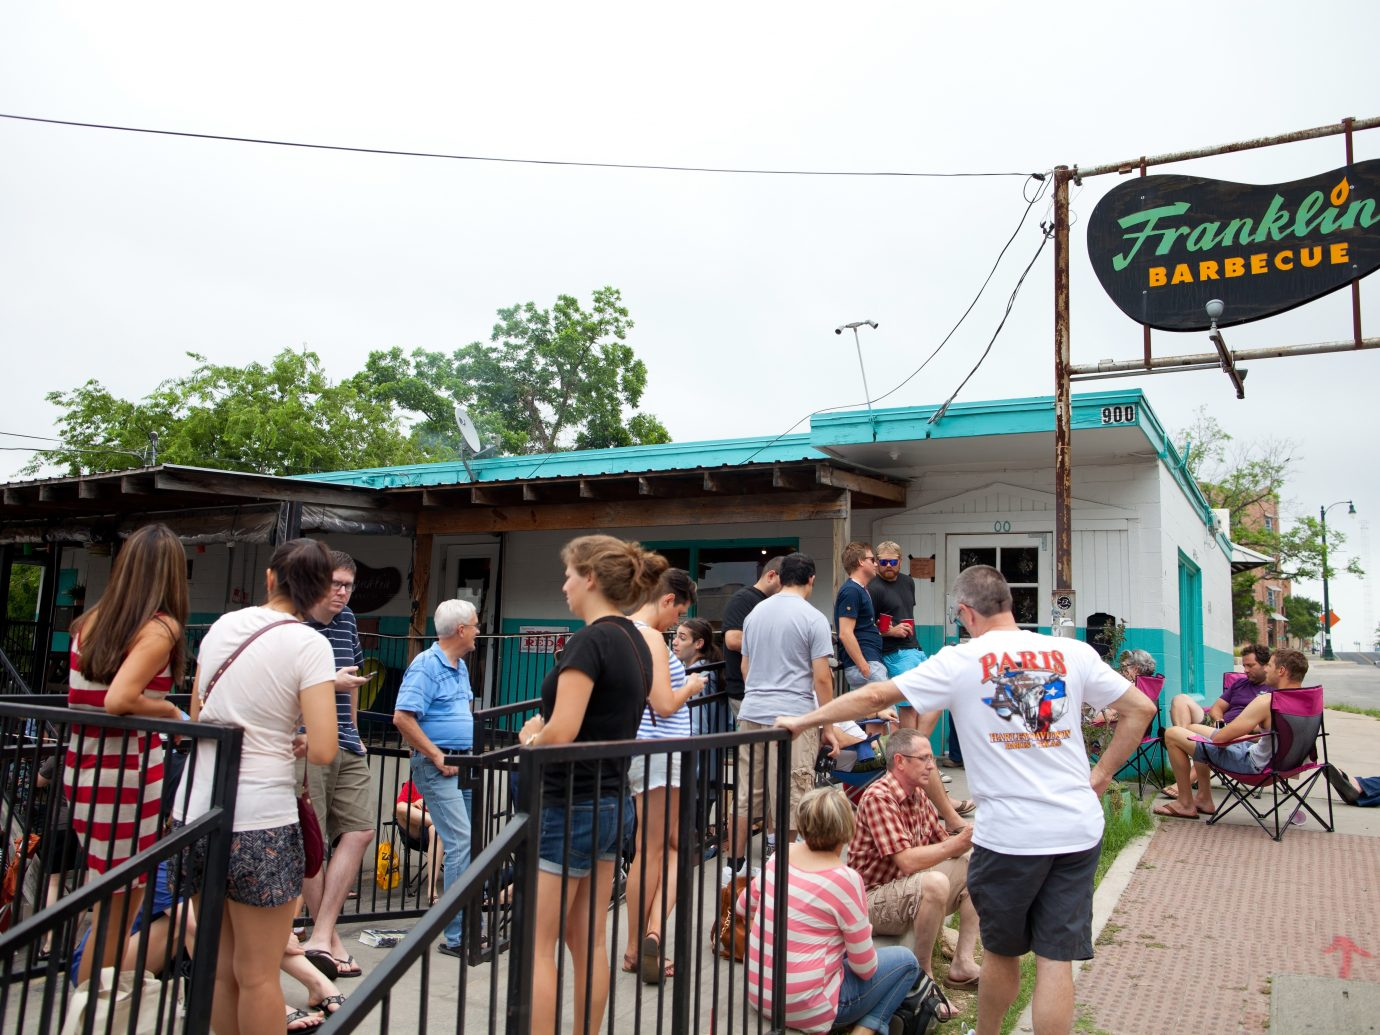 BBQ fans start lining up at 8 am in front of the entrance to Franklin BBQ, each and every day. Franklin BBQ was recently ranked as the #1 BBQ in all of Texas.